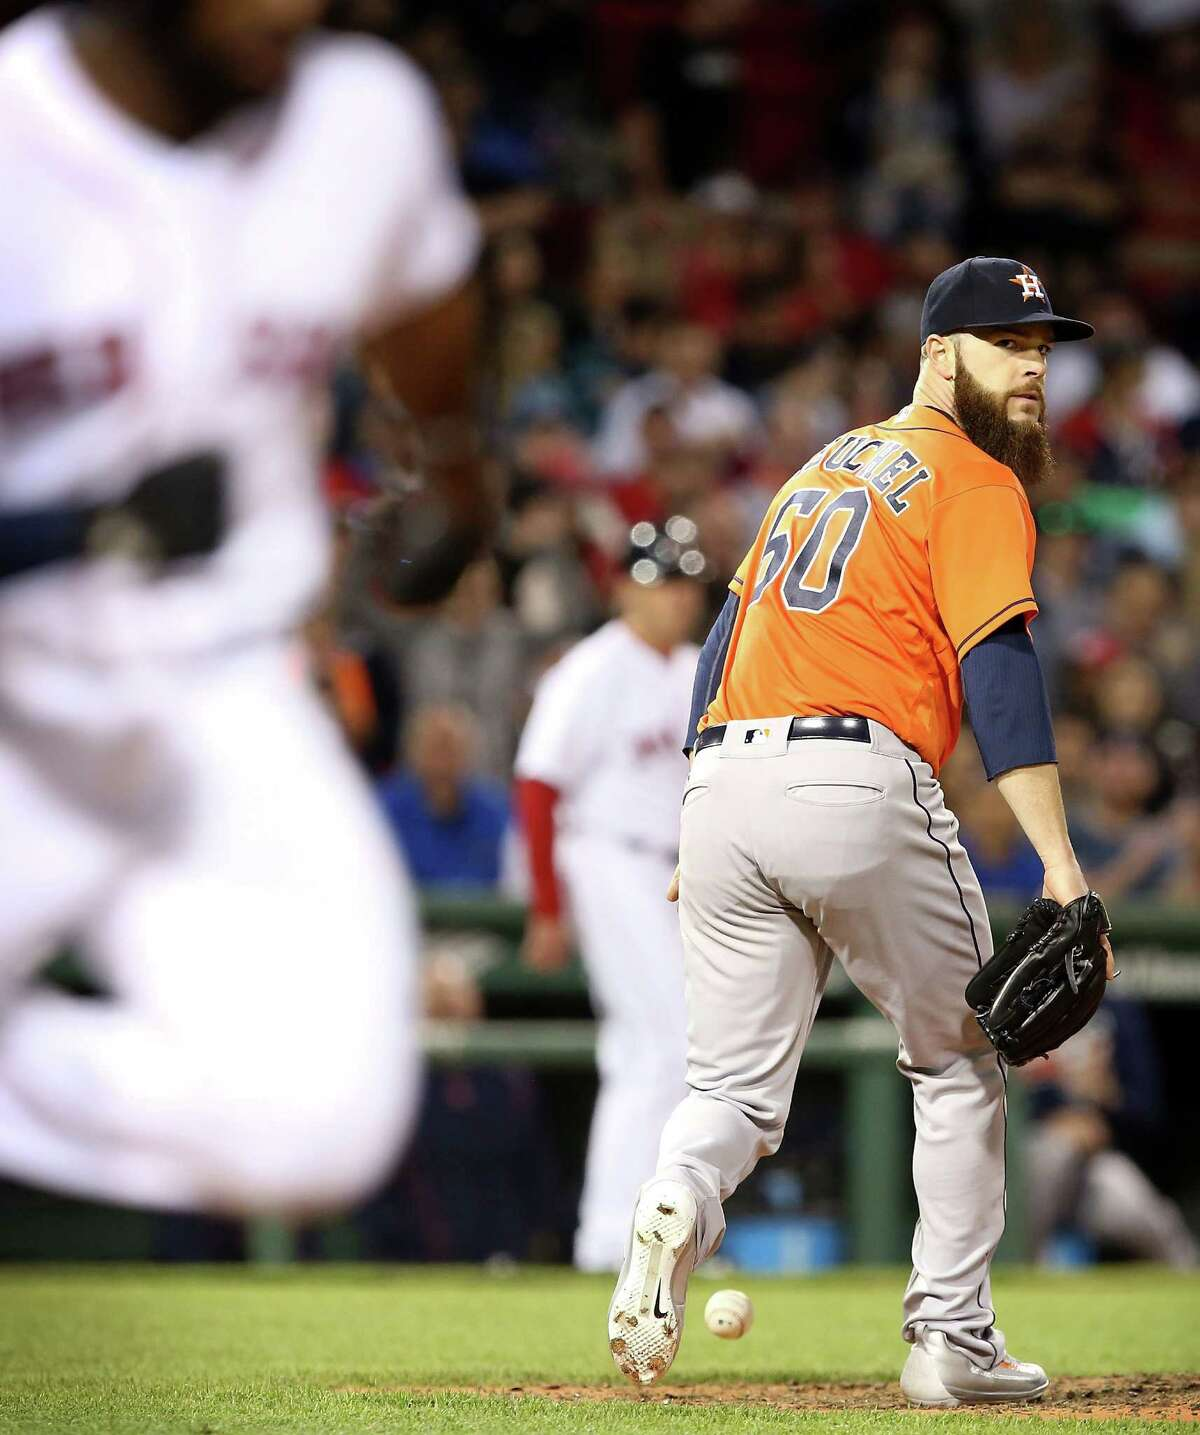 What else can go wrong for Dallas Keuchel? Winless in his last five starts, he couldn't retire Boston's Jackie Bradley Jr. on a soft sixth-inning grounder to the mound Thursday night. Bradley was 2-for-4, extending his hitting streak to 18 games.